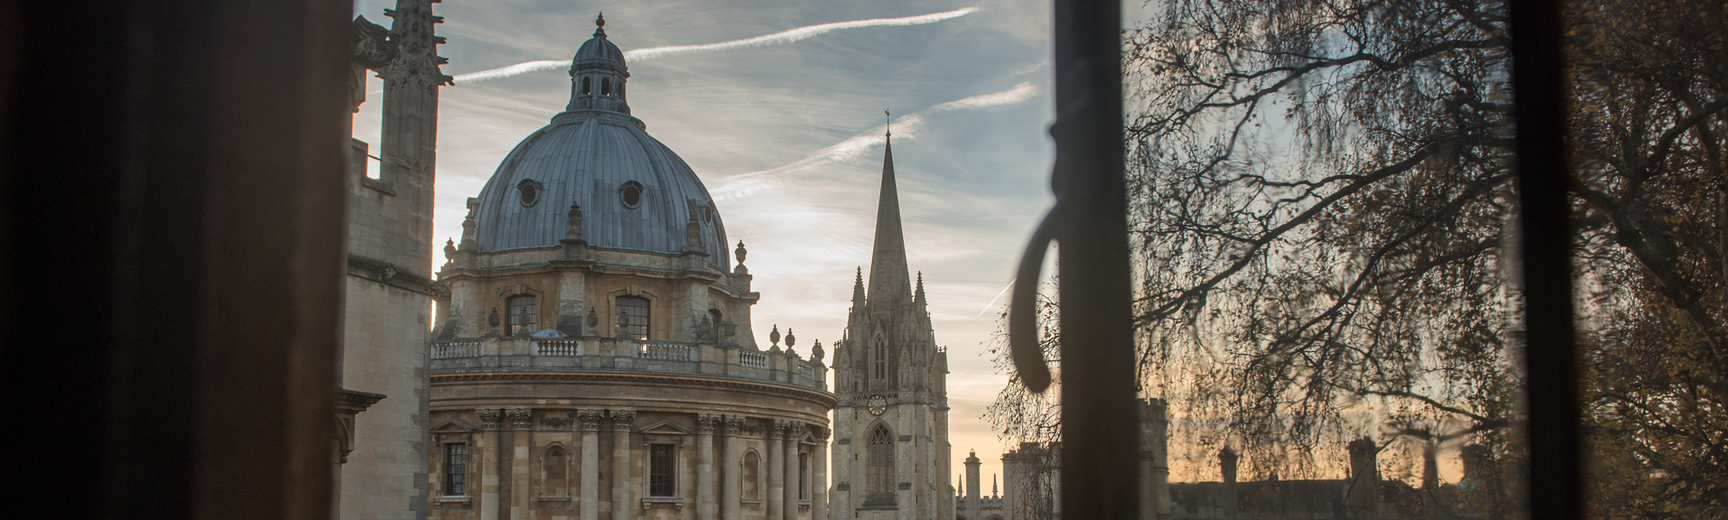 View outside the window on the Radcliffe Camera, Bodleian Library